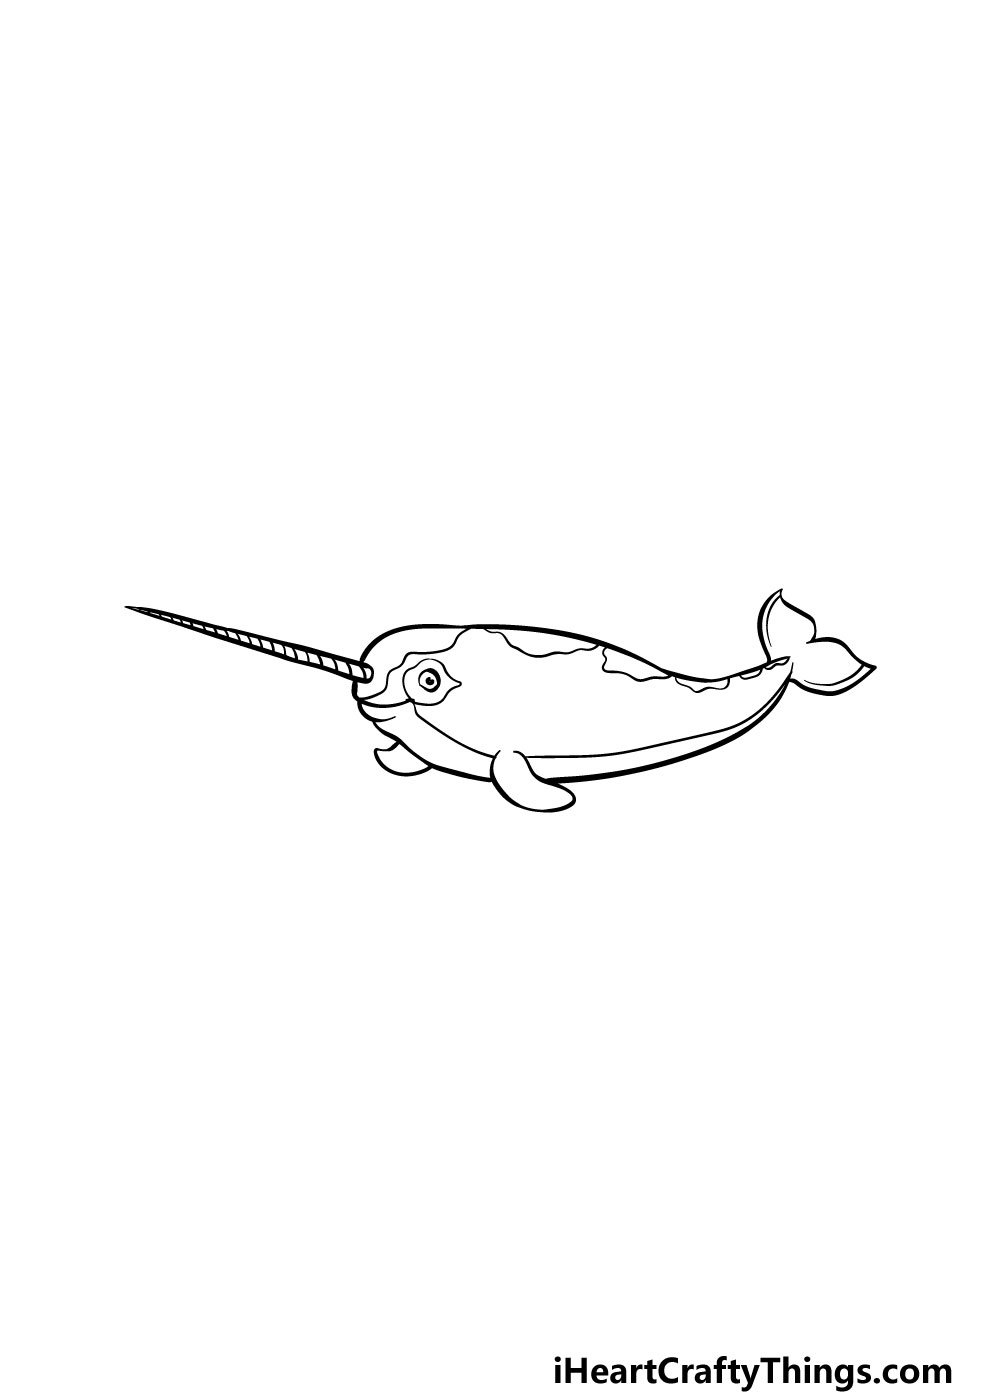 drawing a narwhal step 7